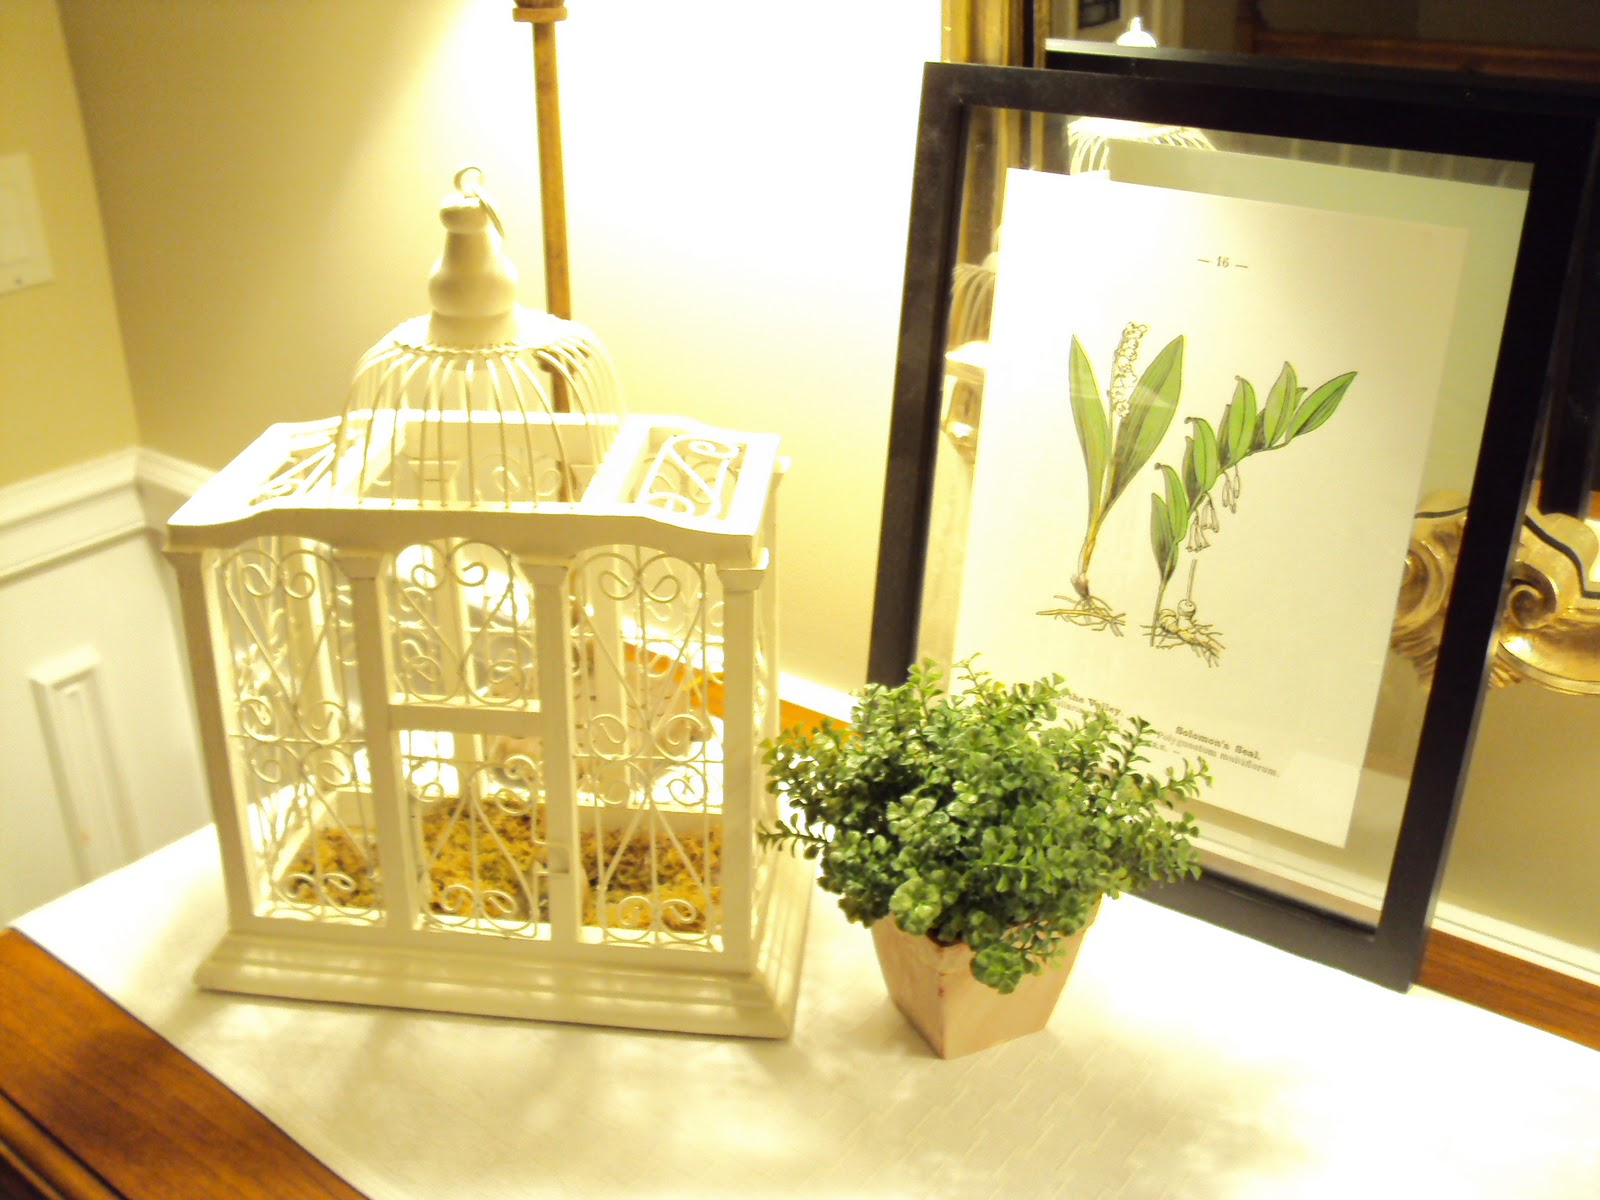 Light of the Home: Some Spring in The Foyer